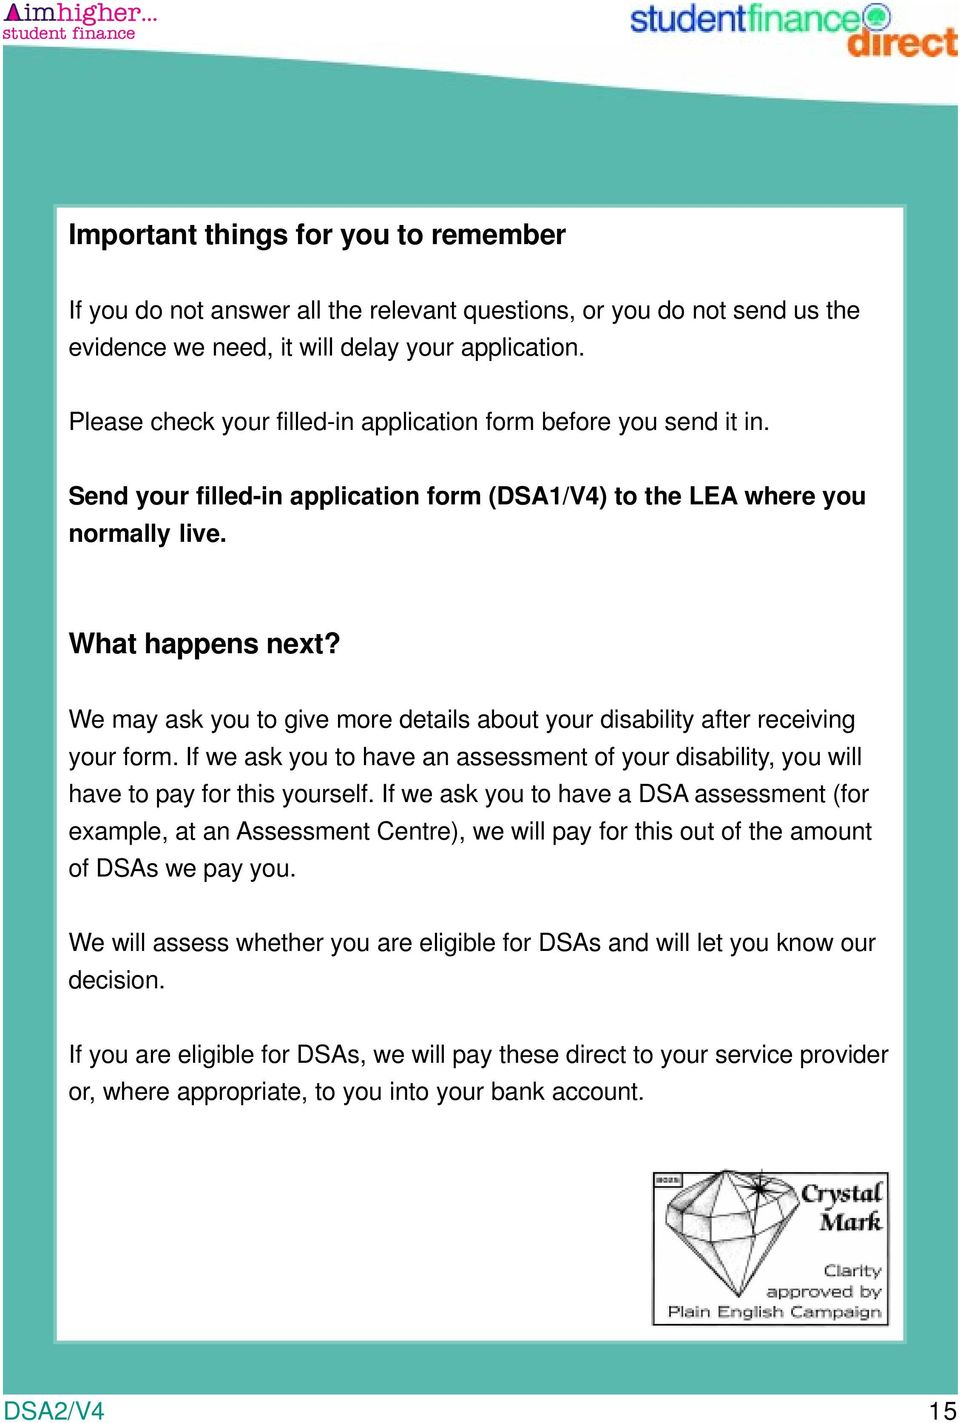 We may ask you to give more details about your disability after receiving your form. If we ask you to have an assessment of your disability, you will have to pay for this yourself.